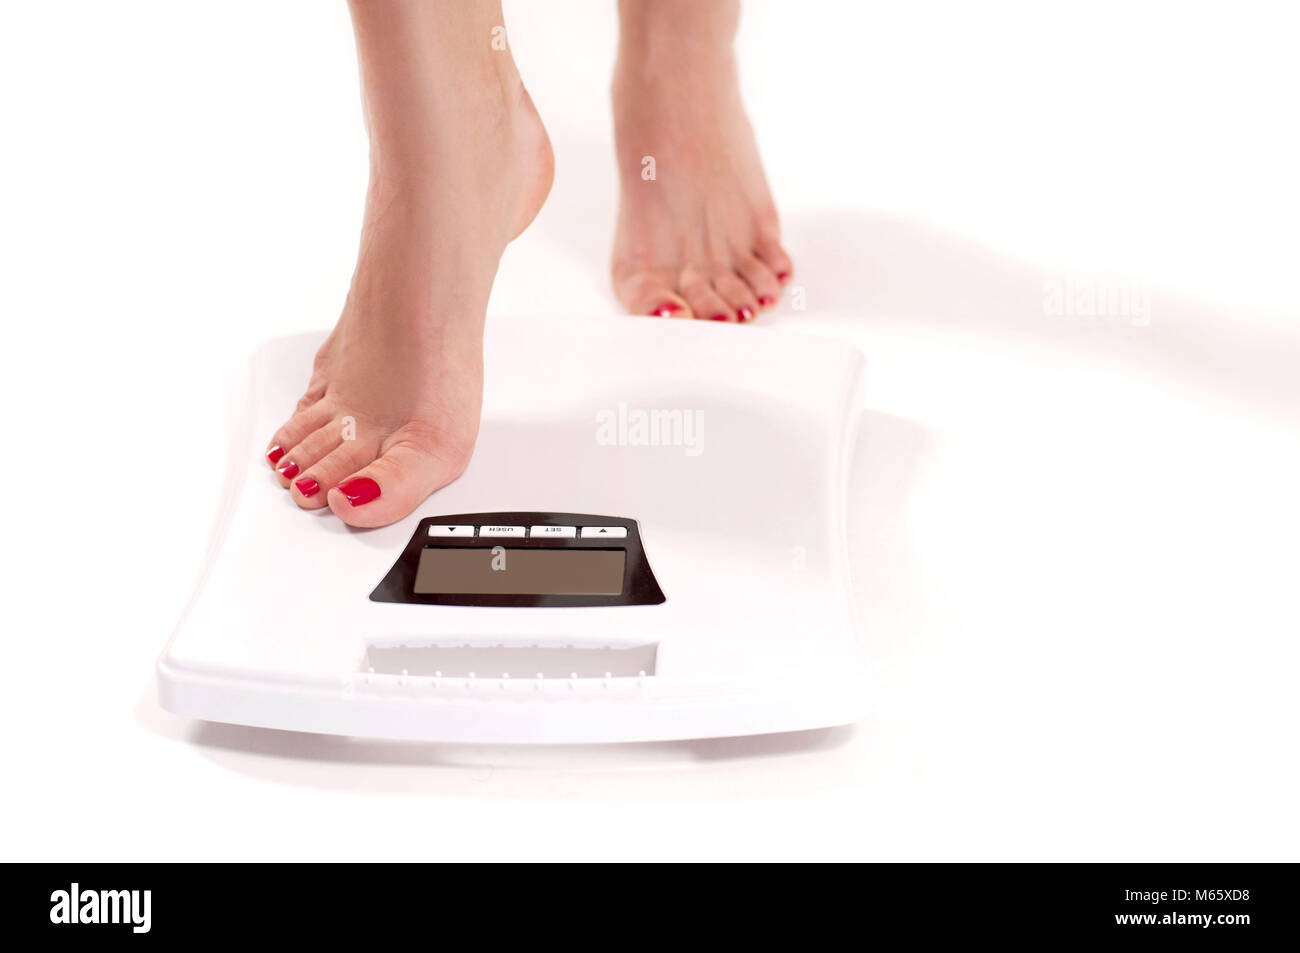 Diet and Weight Loss. Woman standing on weight scale - Stock Image